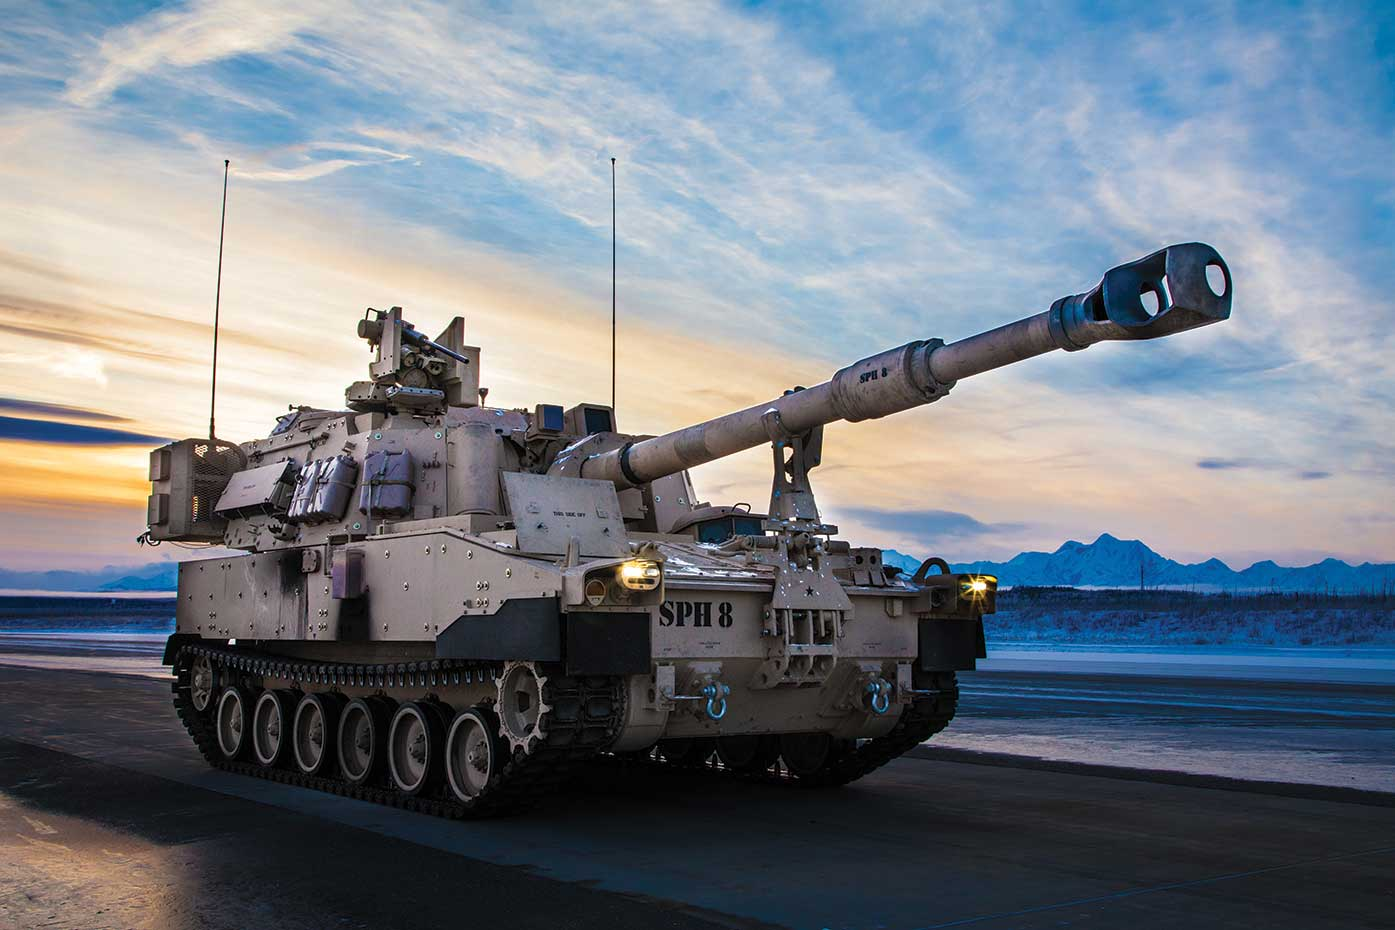 Paladin Family of Vehicles (FOV) — M109A6 Paladin/M992A2 FAASV/M109A7 SPH/M992A3 CAT and Extended Range Cannon Artillery (ERCA)